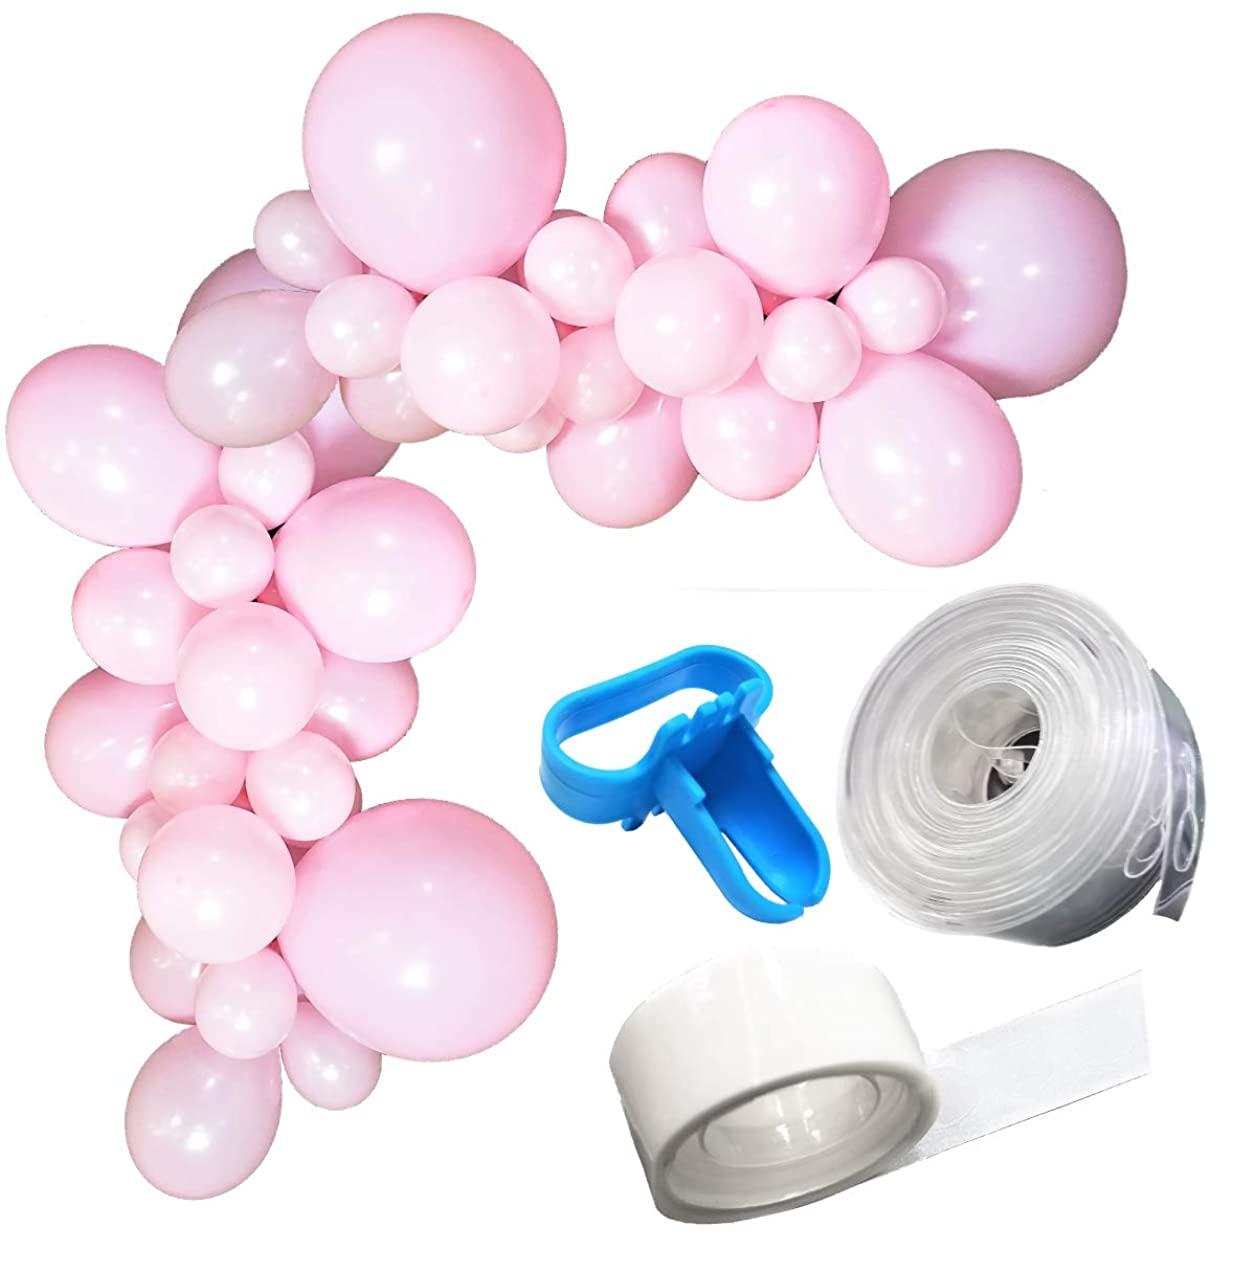 Buniluu Baby Pink Balloon Garland Kit | 50 pcs | Pink, Light Pink, Solid Pink | 16ft Balloon Strip Tape | Balloon Tie Tool | DIY Special Events Birthday Weeding Holiday Creative Decorations